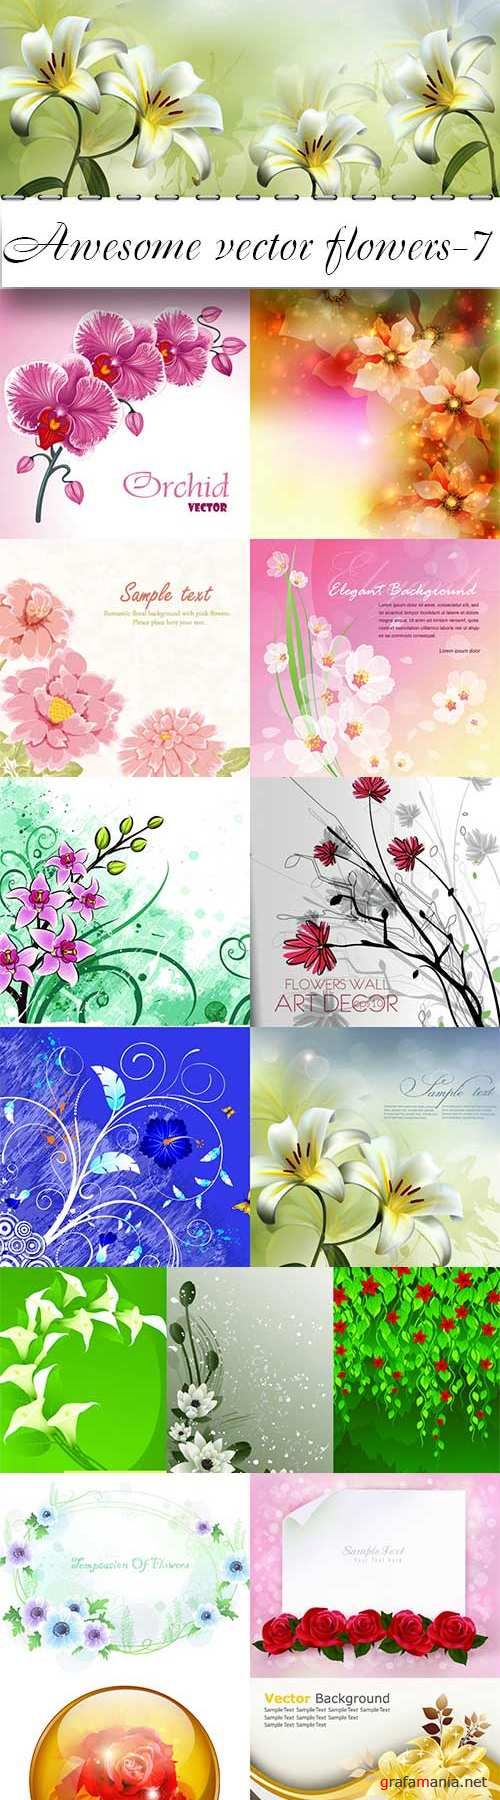 Awesome vector flowers-7